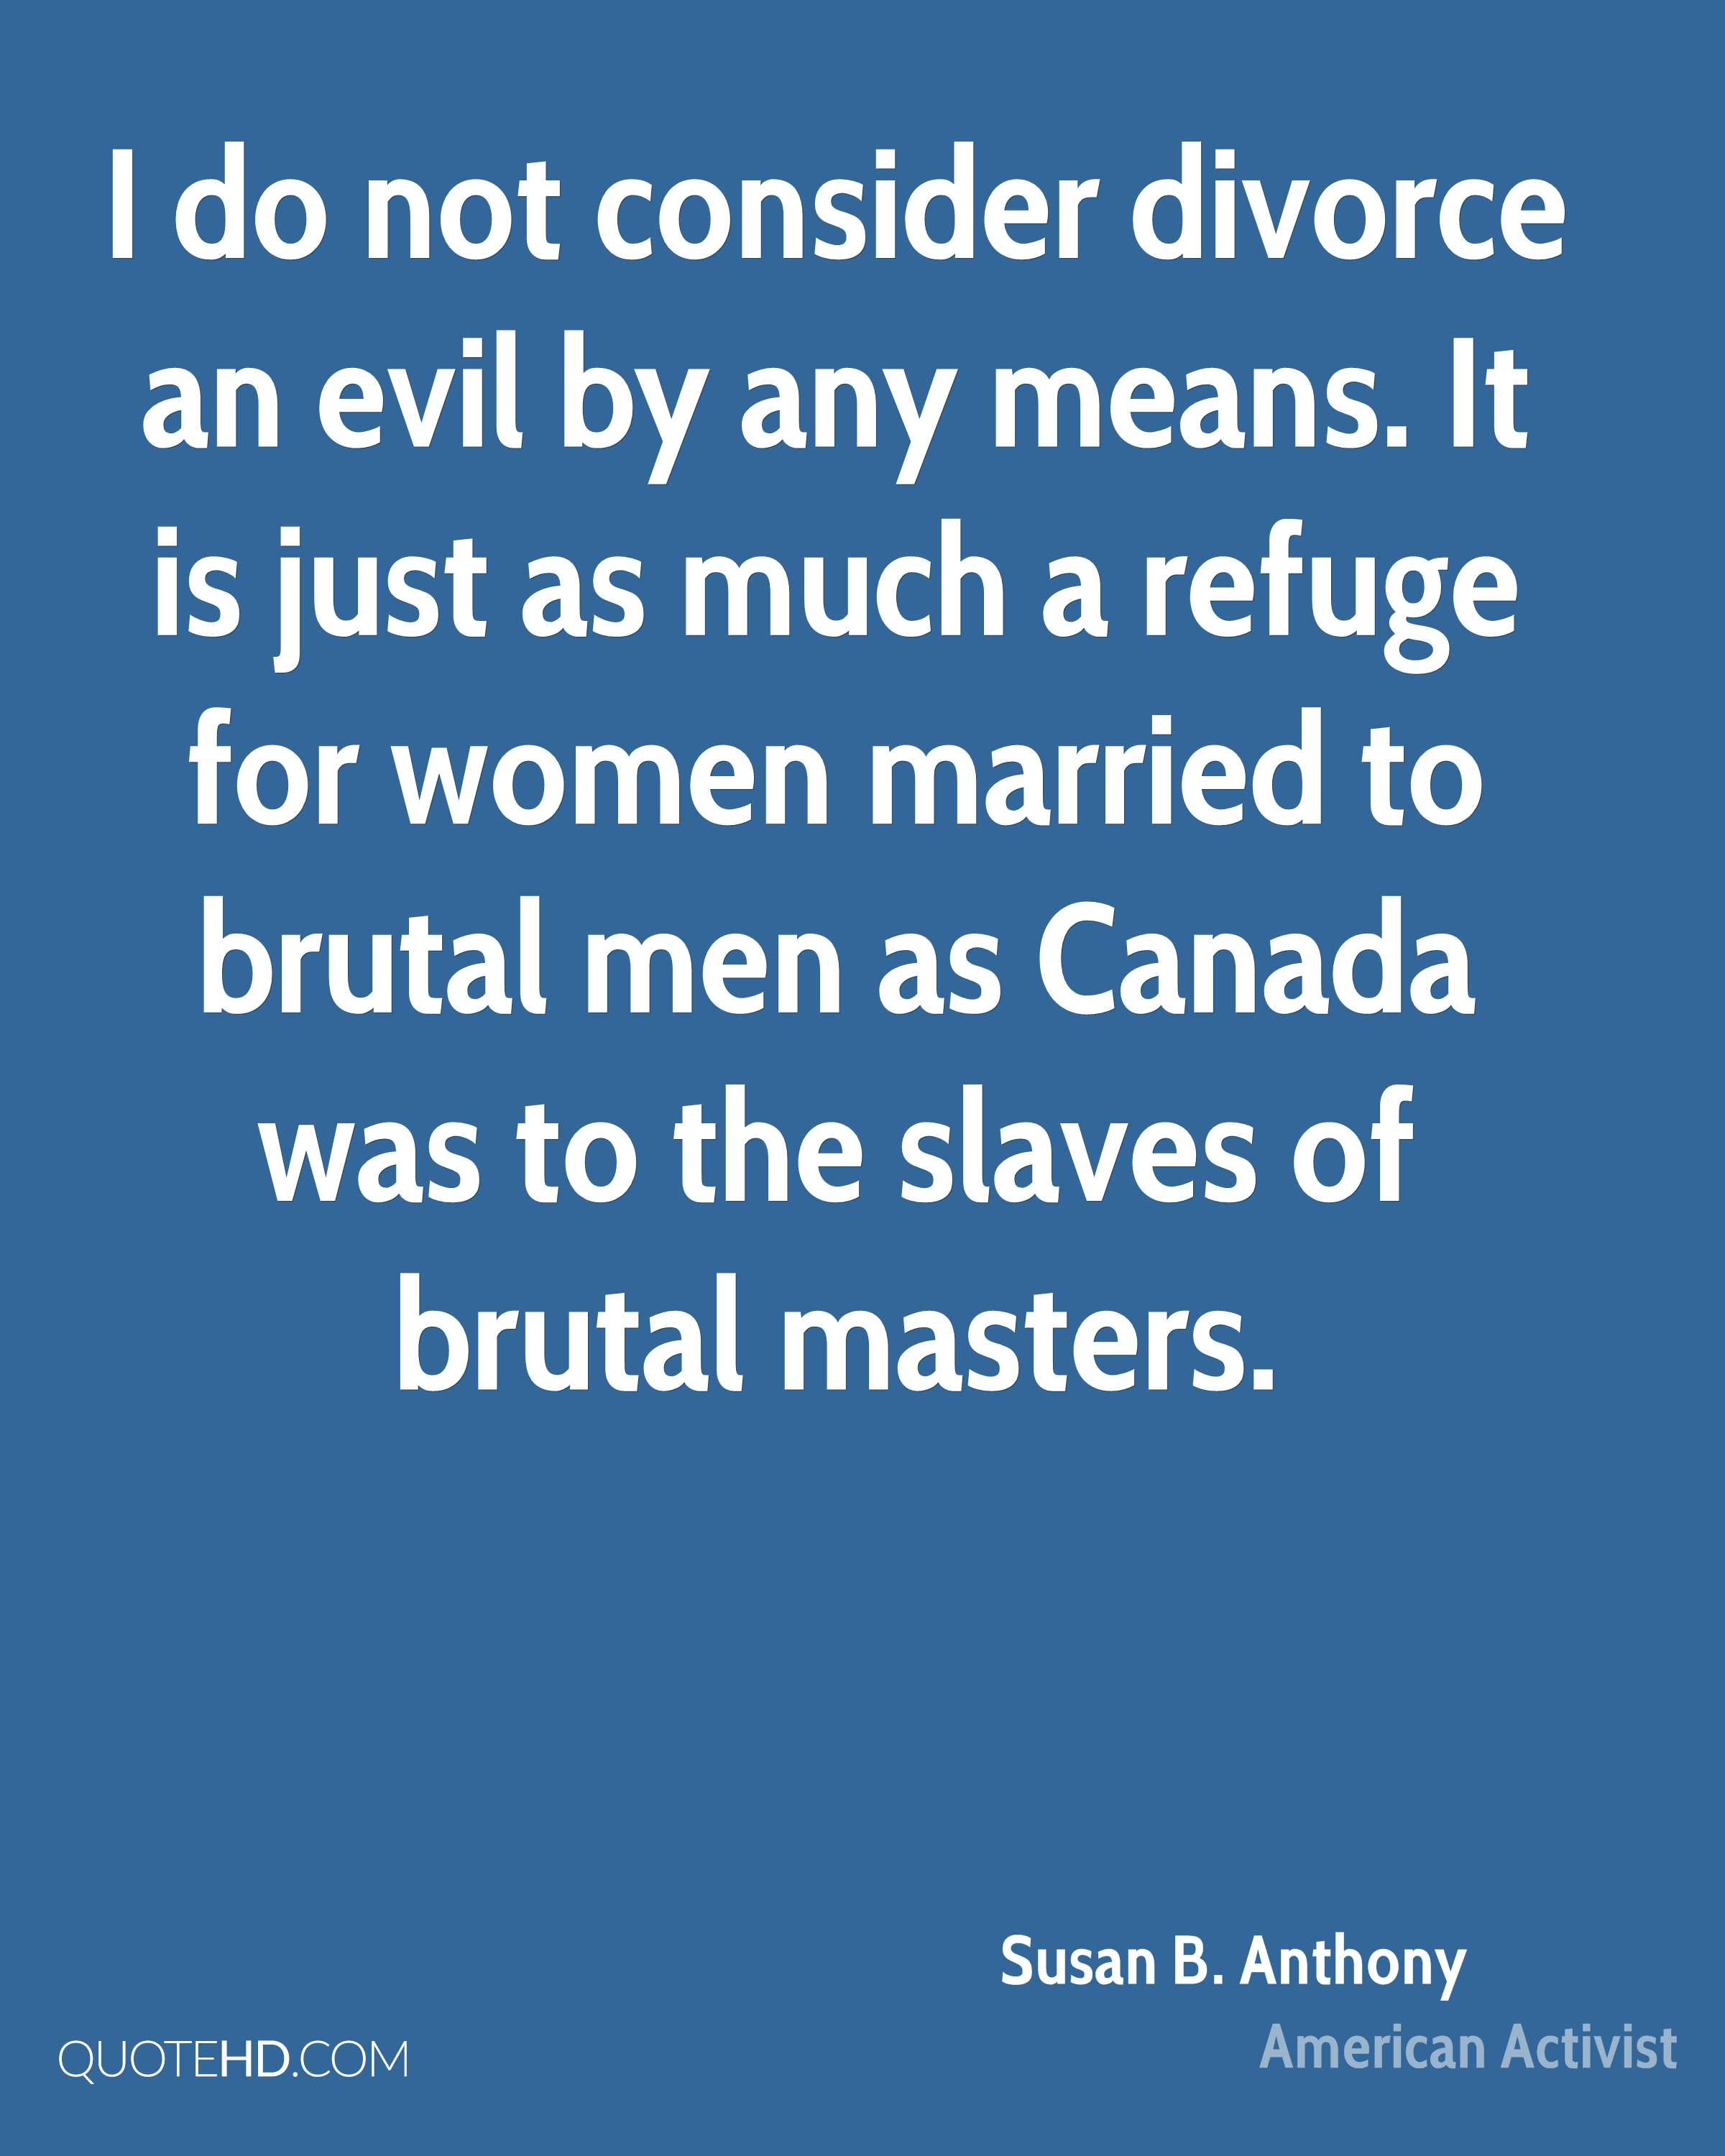 I do not consider divorce an evil by any means. It is just as much a refuge for women married to brutal men as Canada was to the slaves of brutal masters.